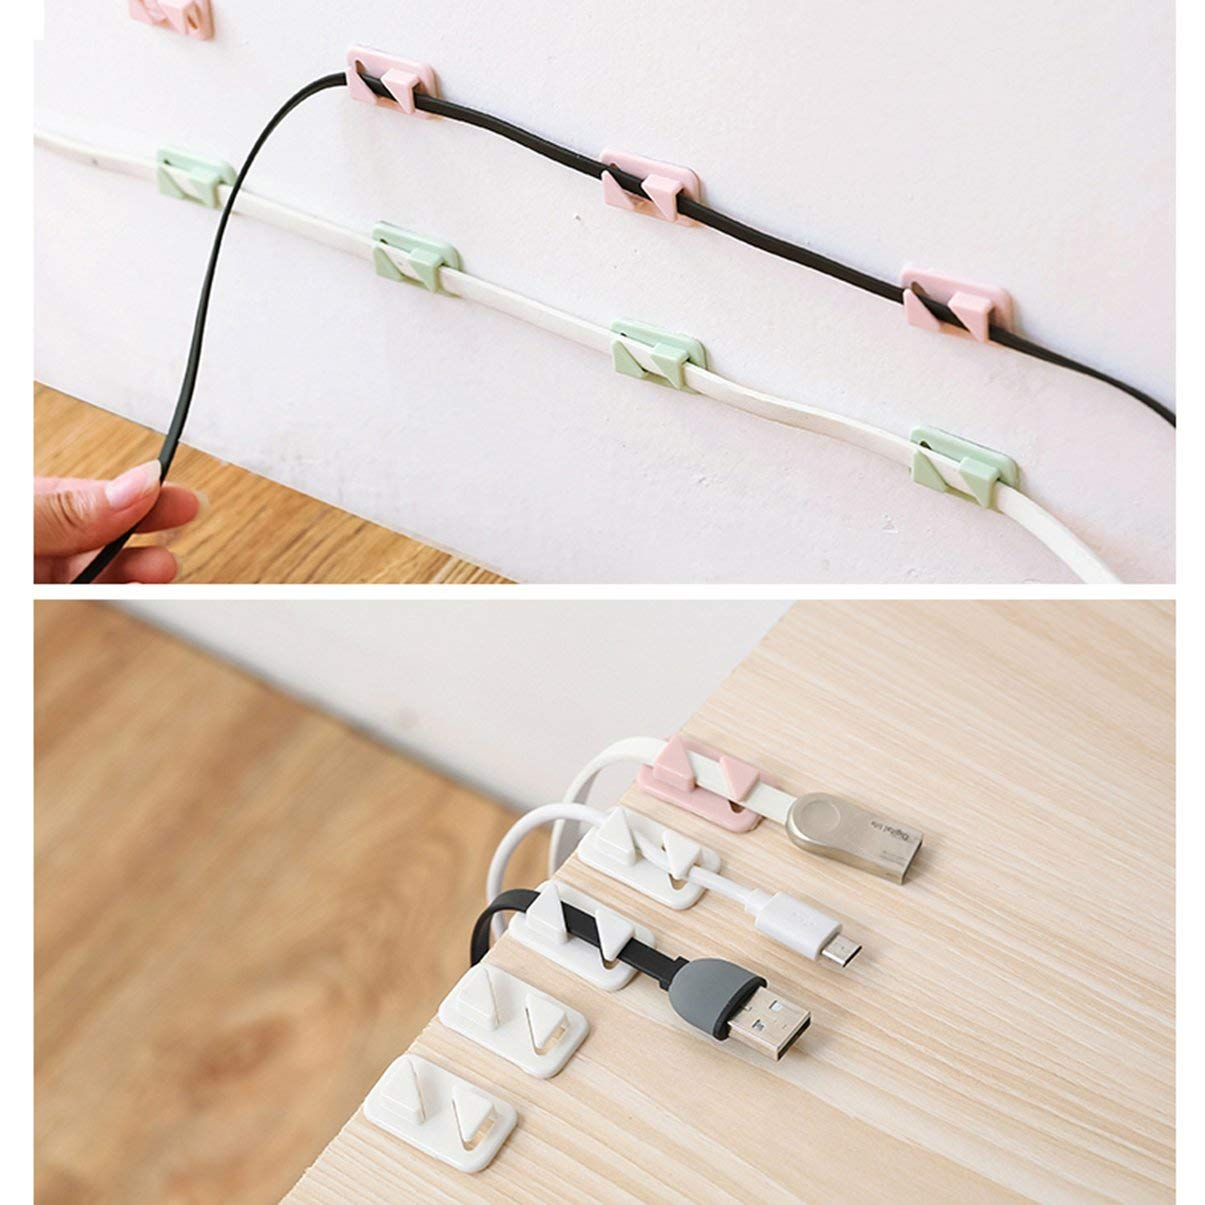 12pcs Universal Wire Tie Autoadhesivo Rect/ángulo Cord Management Winder Cable Holder Organizer Mount Clip Clamp